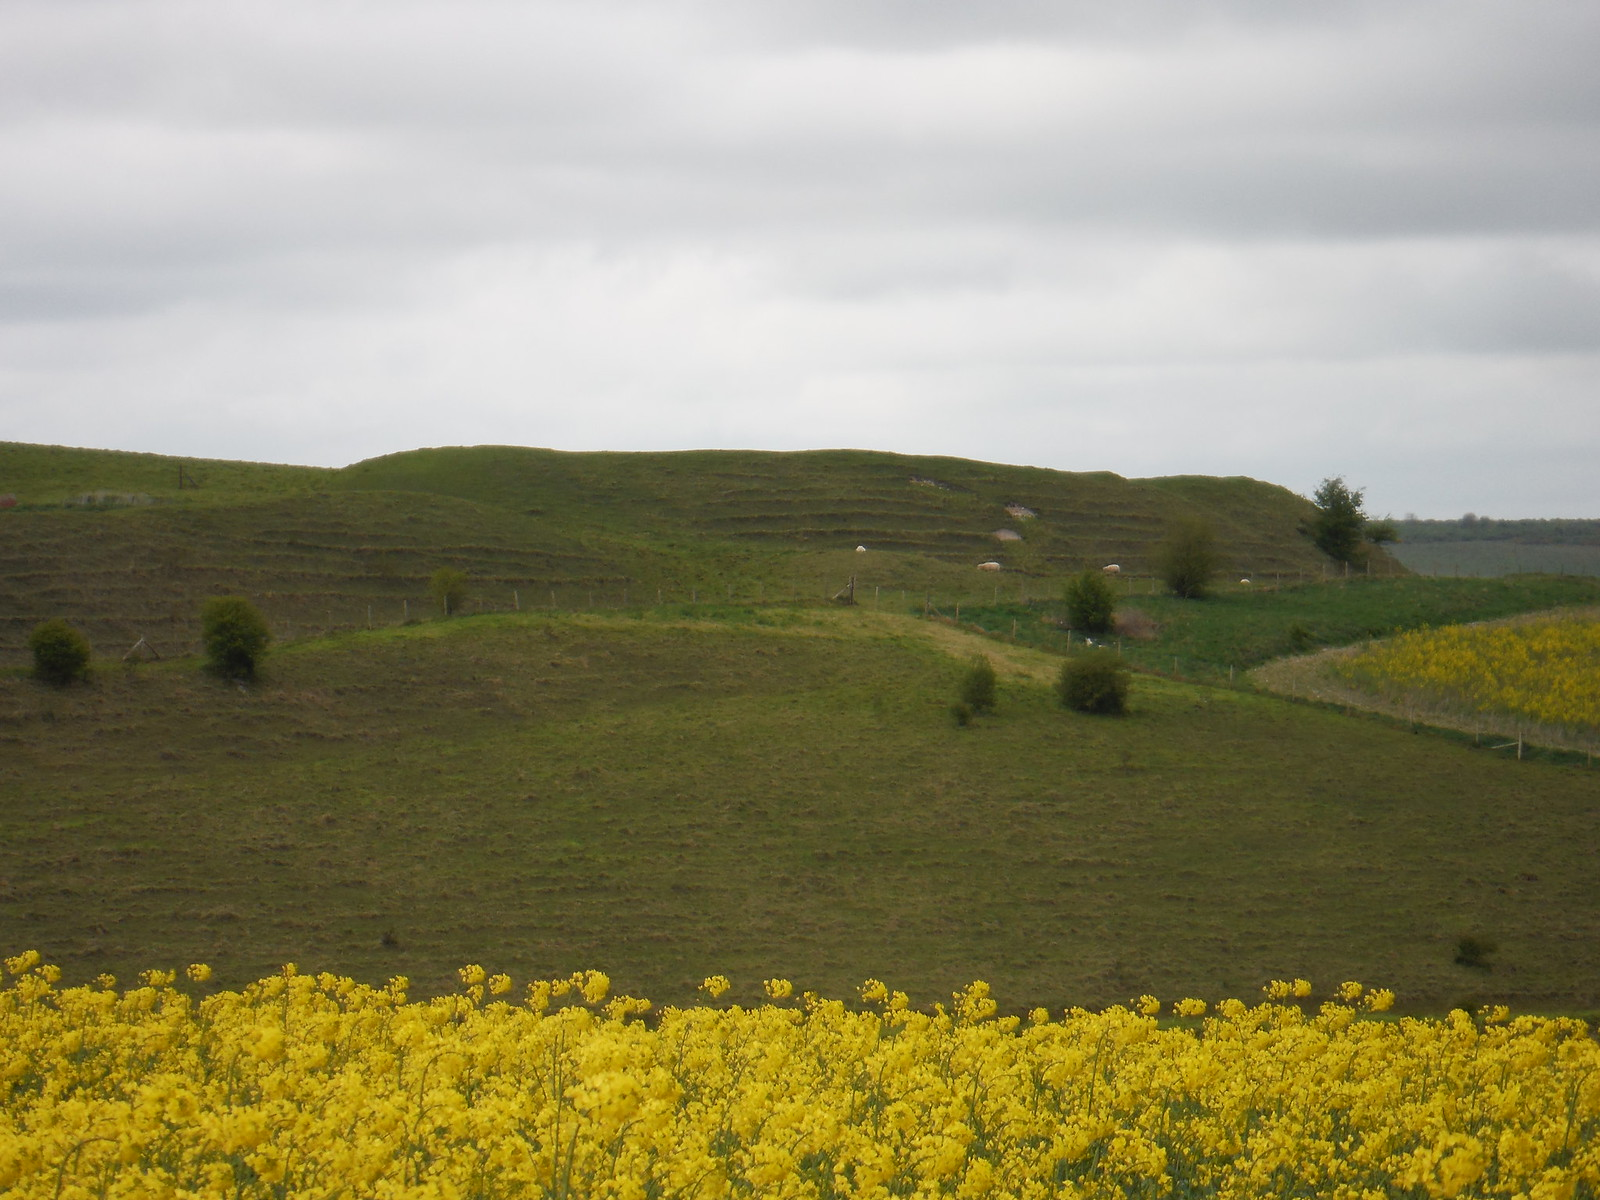 Scratchbury Camp Ramparts SWC Walk 286 Westbury to Warminster (via Imber Range)